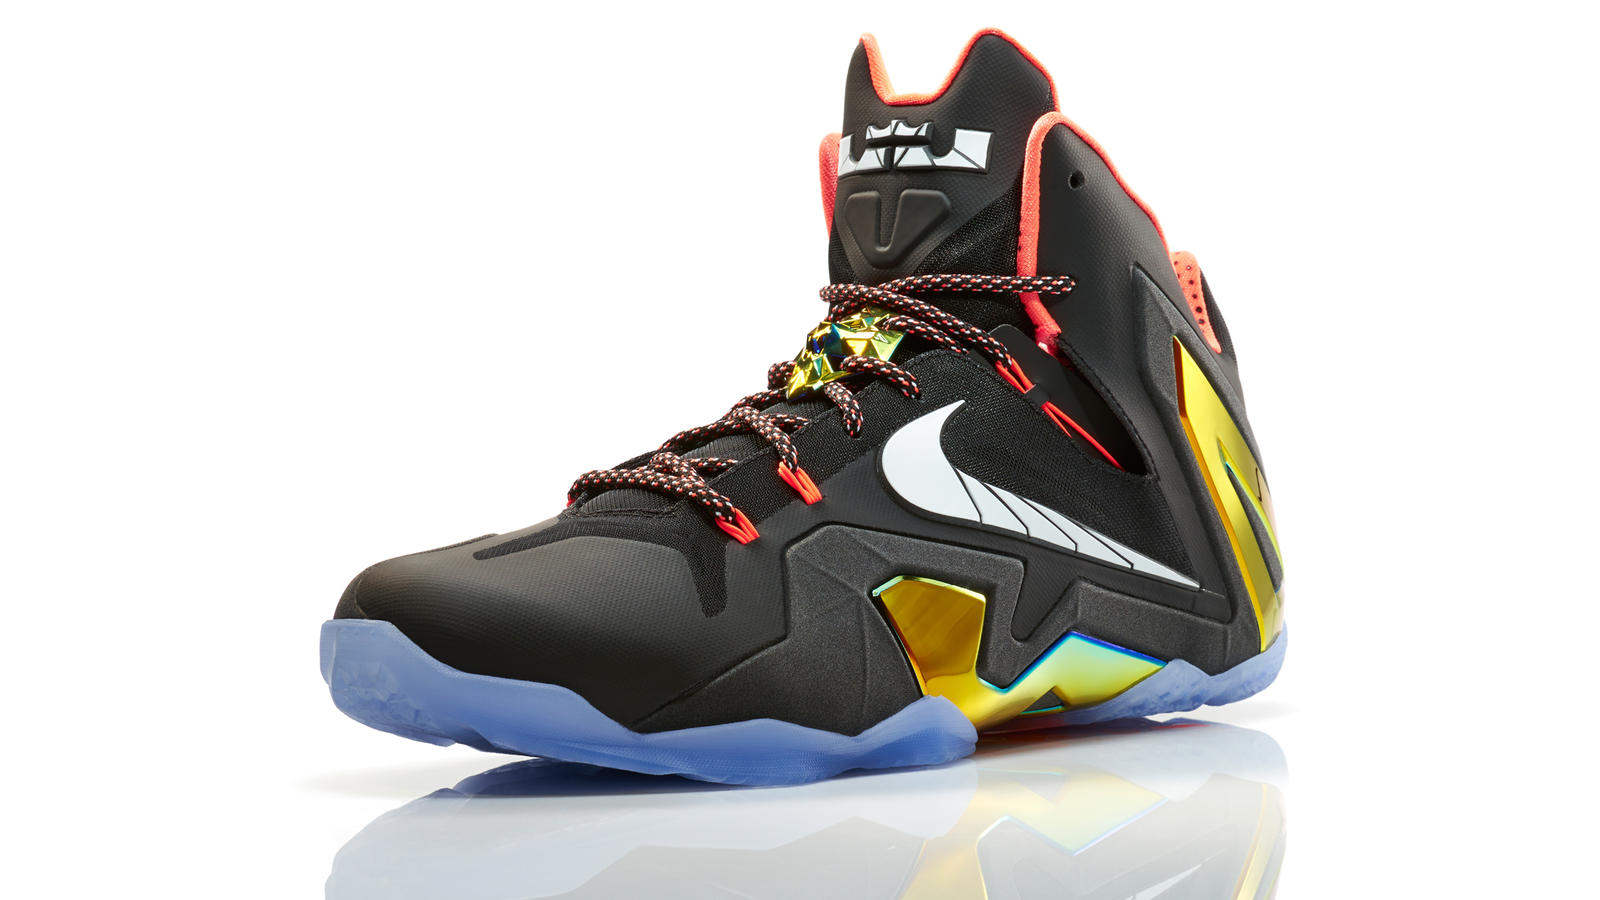 lebron11_quest_100_3qtr_16910_fb